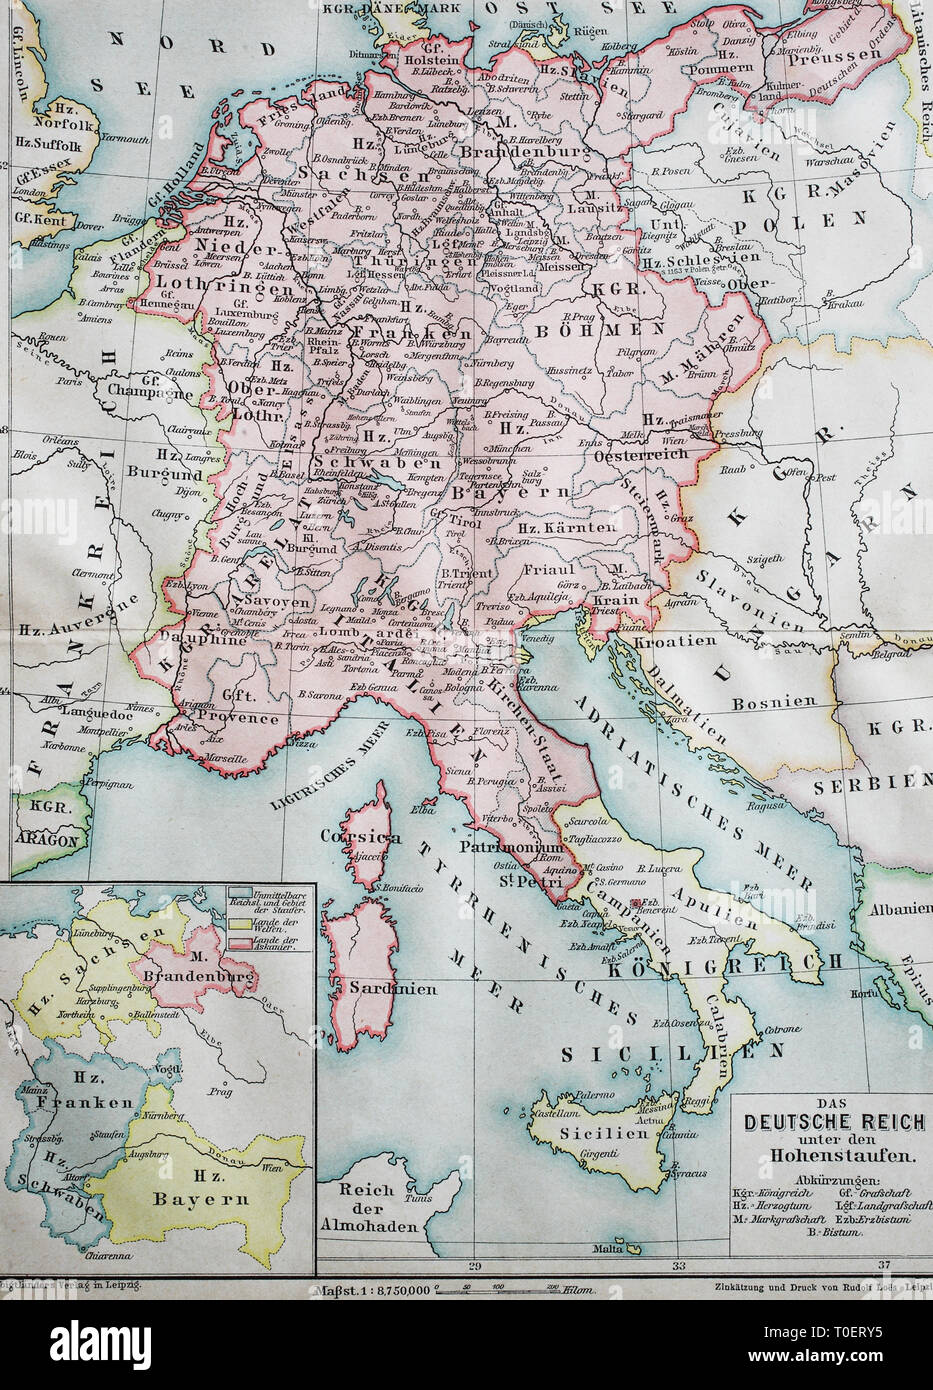 Historical map of the german empire at the time of the ...